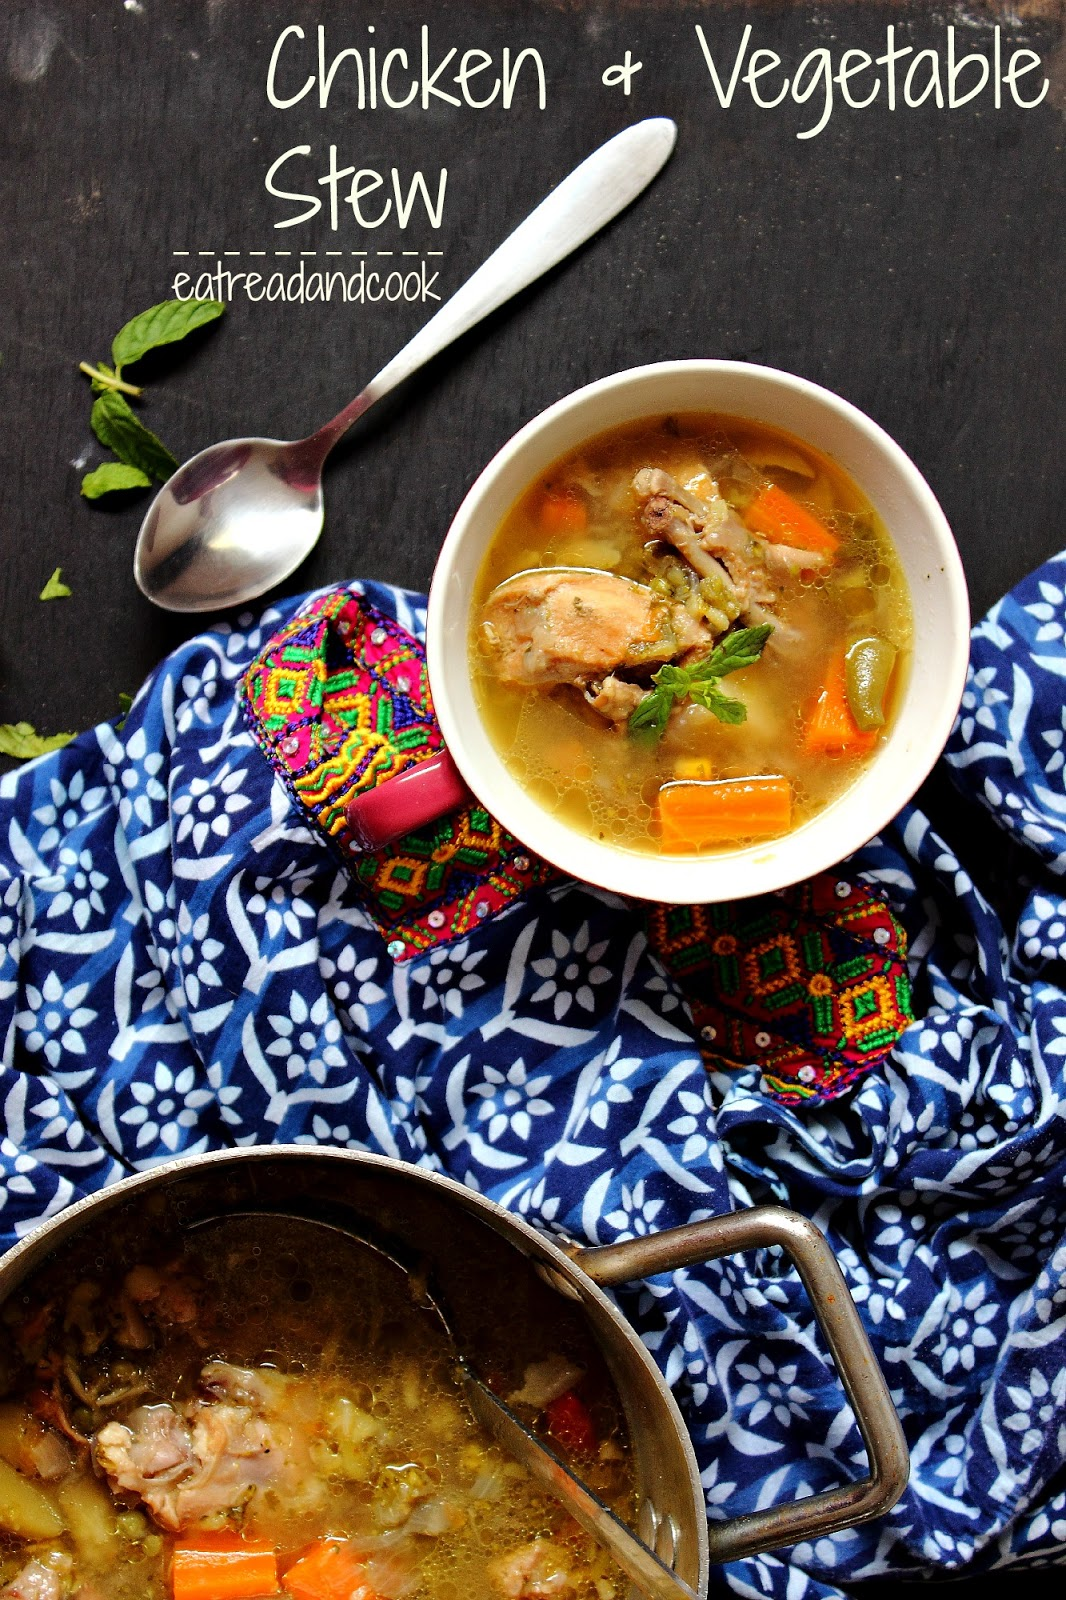 Chicken and Vegetable Stew | Eat Read & Cook